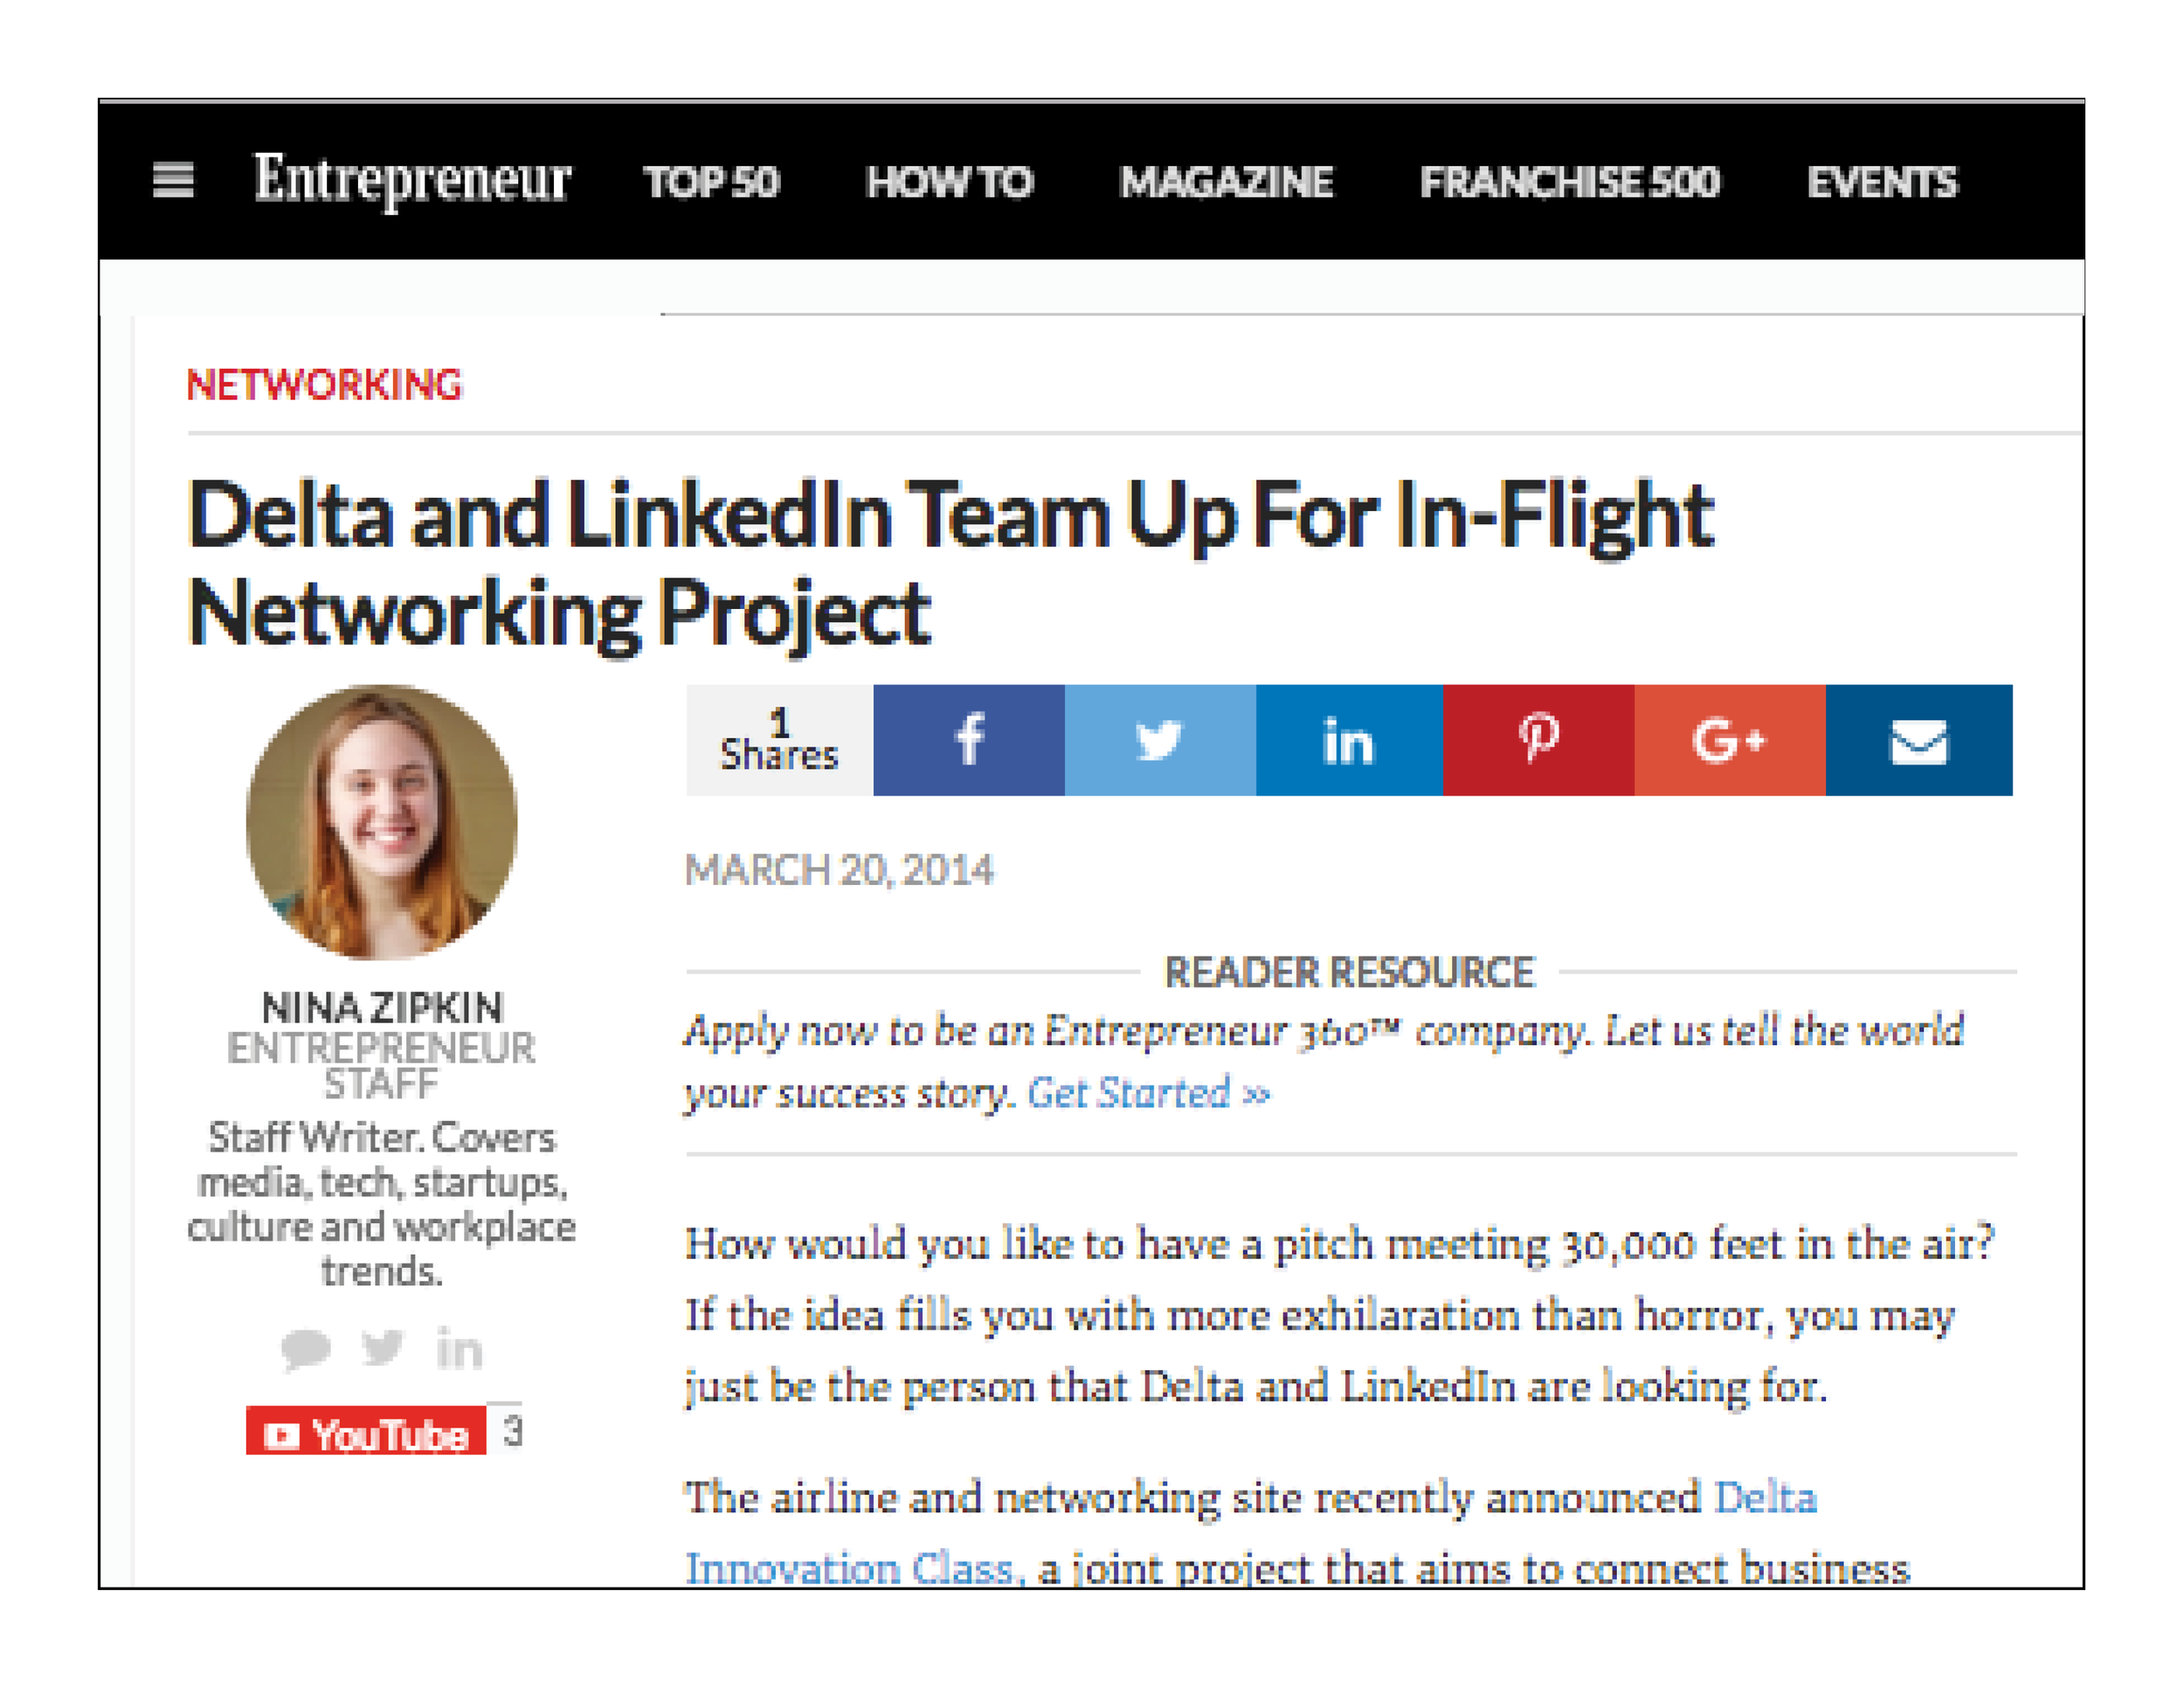 """""""Delta Innovation Class (2014) by Delta , a joint project that aims to connect business leaders and 'up-and-coming professionals' on flights to industry events."""